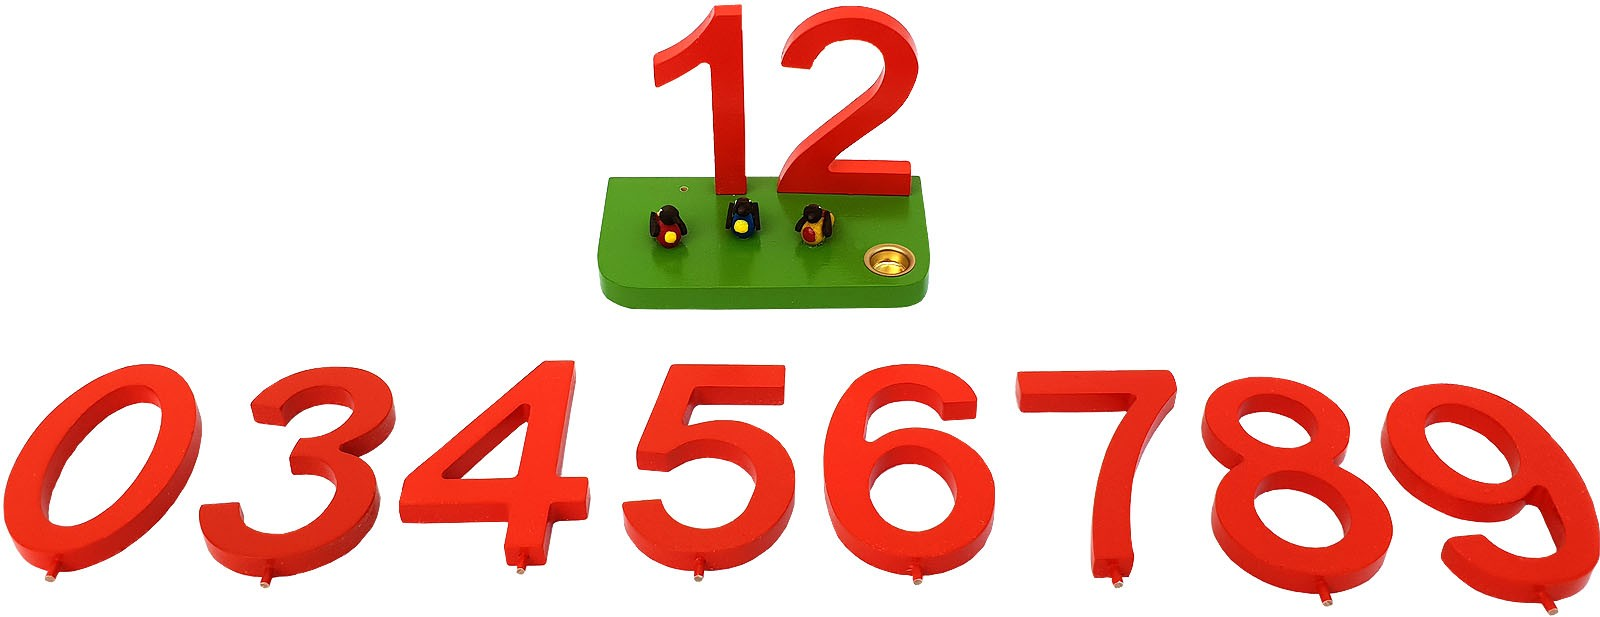 birthday numbers, red